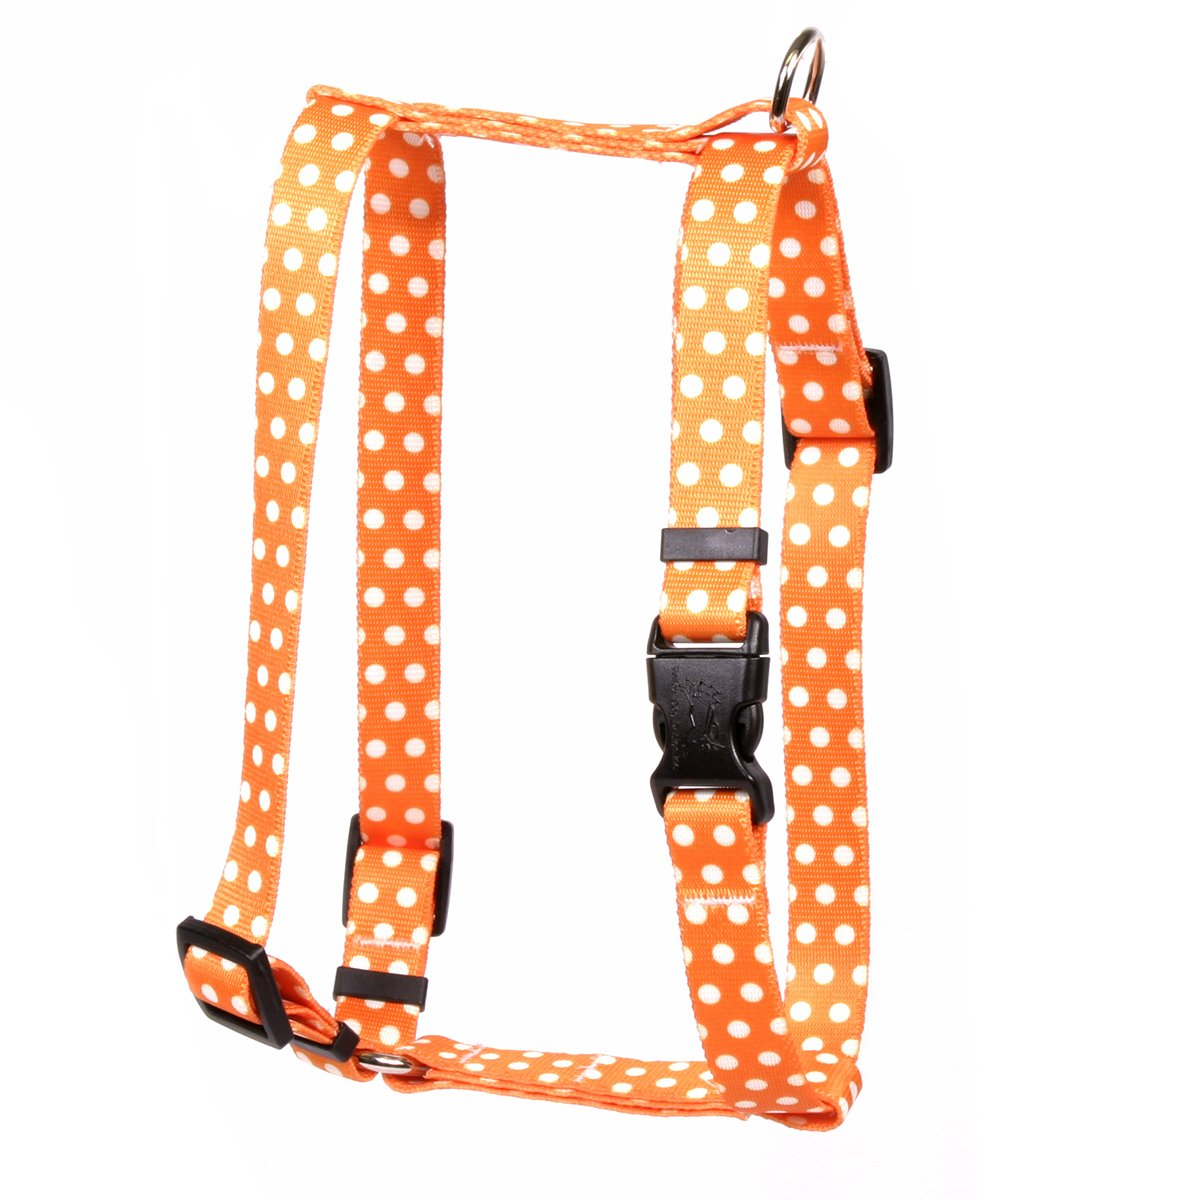 Yellow Dog Design Orange Polka Dot Roman Style H Dog Harness, X-Large-1'' Wide and fits Chest of 28 to 36''